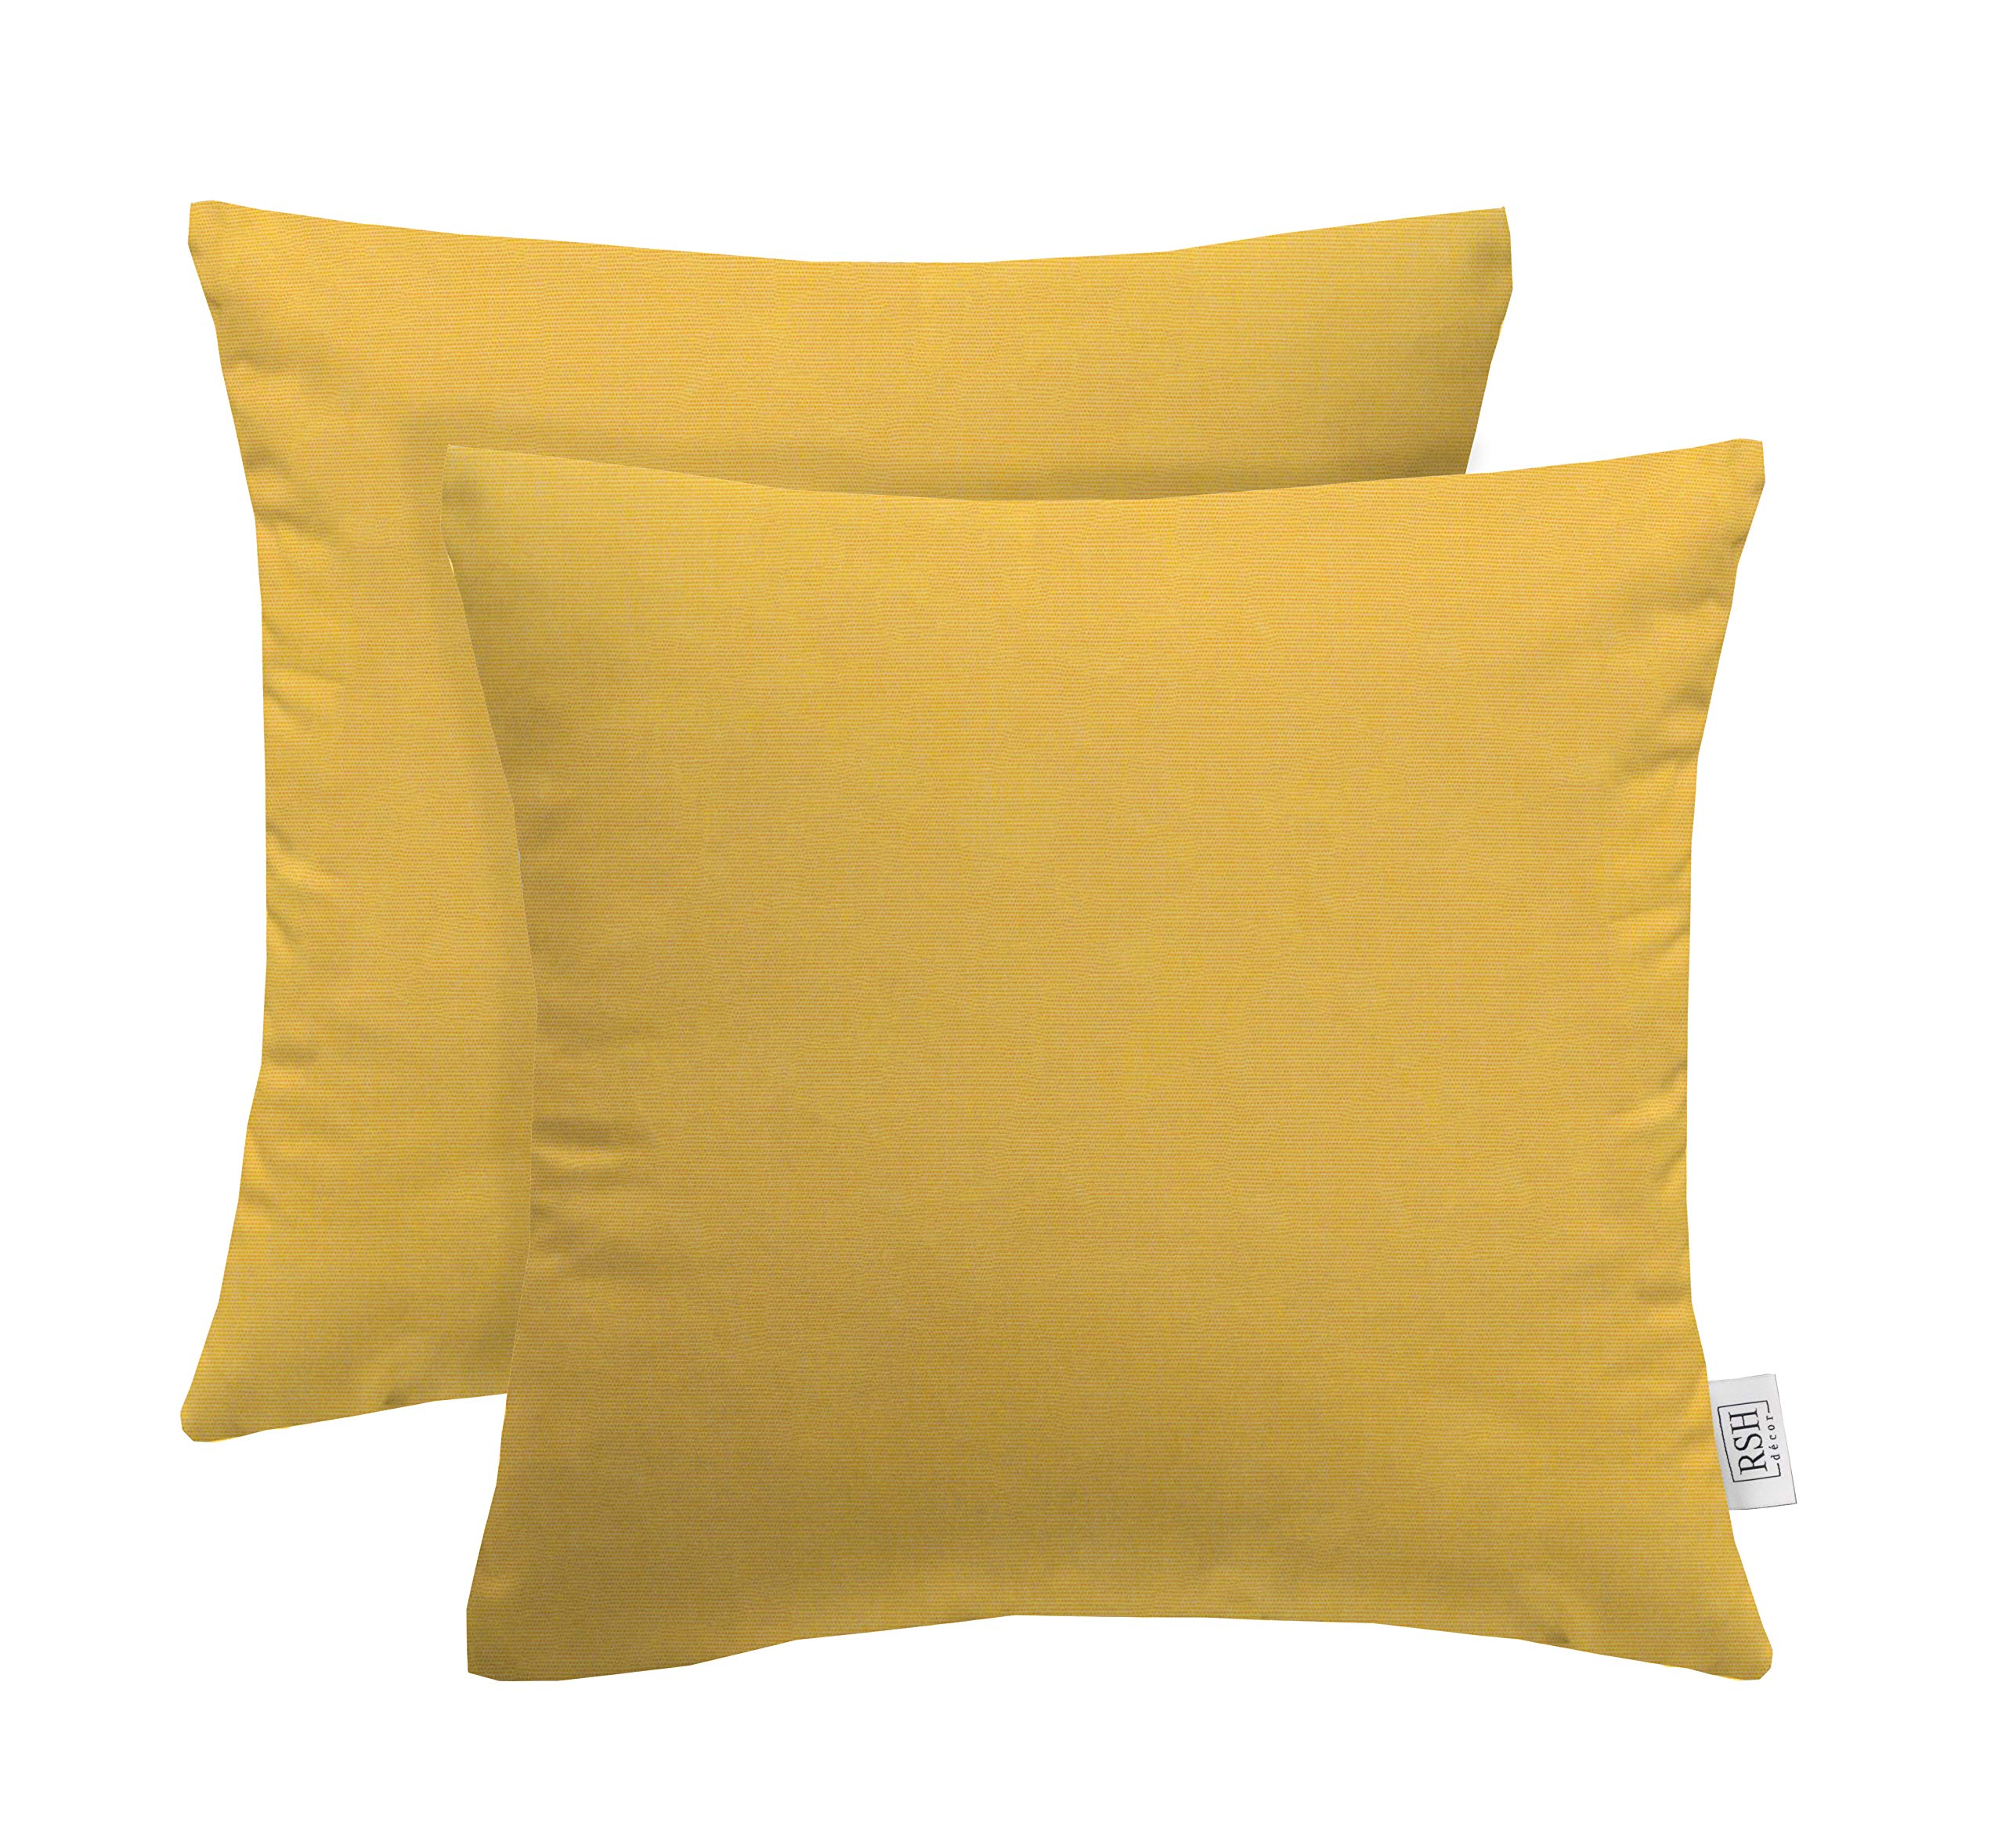 RSH Décor Set of 2 Indoor Outdoor Decorative Square Throw Pillows Made of Sunbrella Canvas Buttercup Yellow (17'' x 17'')